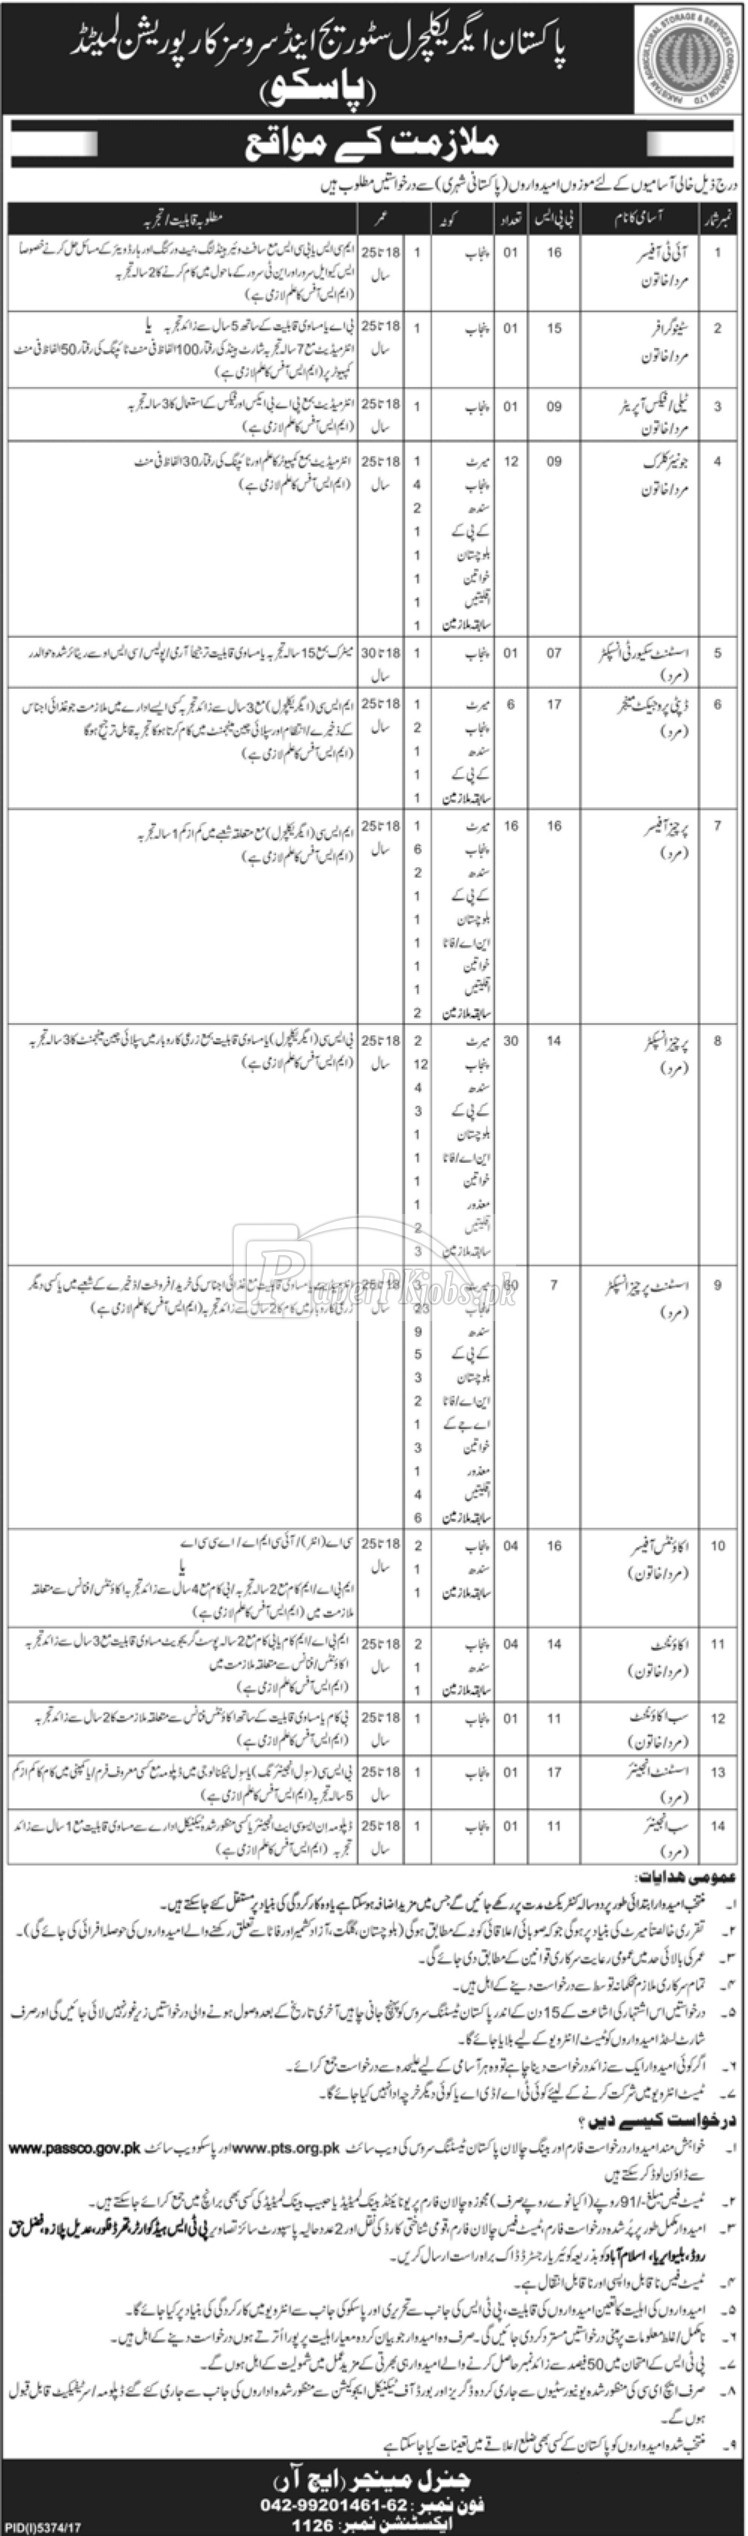 Pakistan Agricultural Storage & Services Corporation Ltd PASSCO Jobs 2018